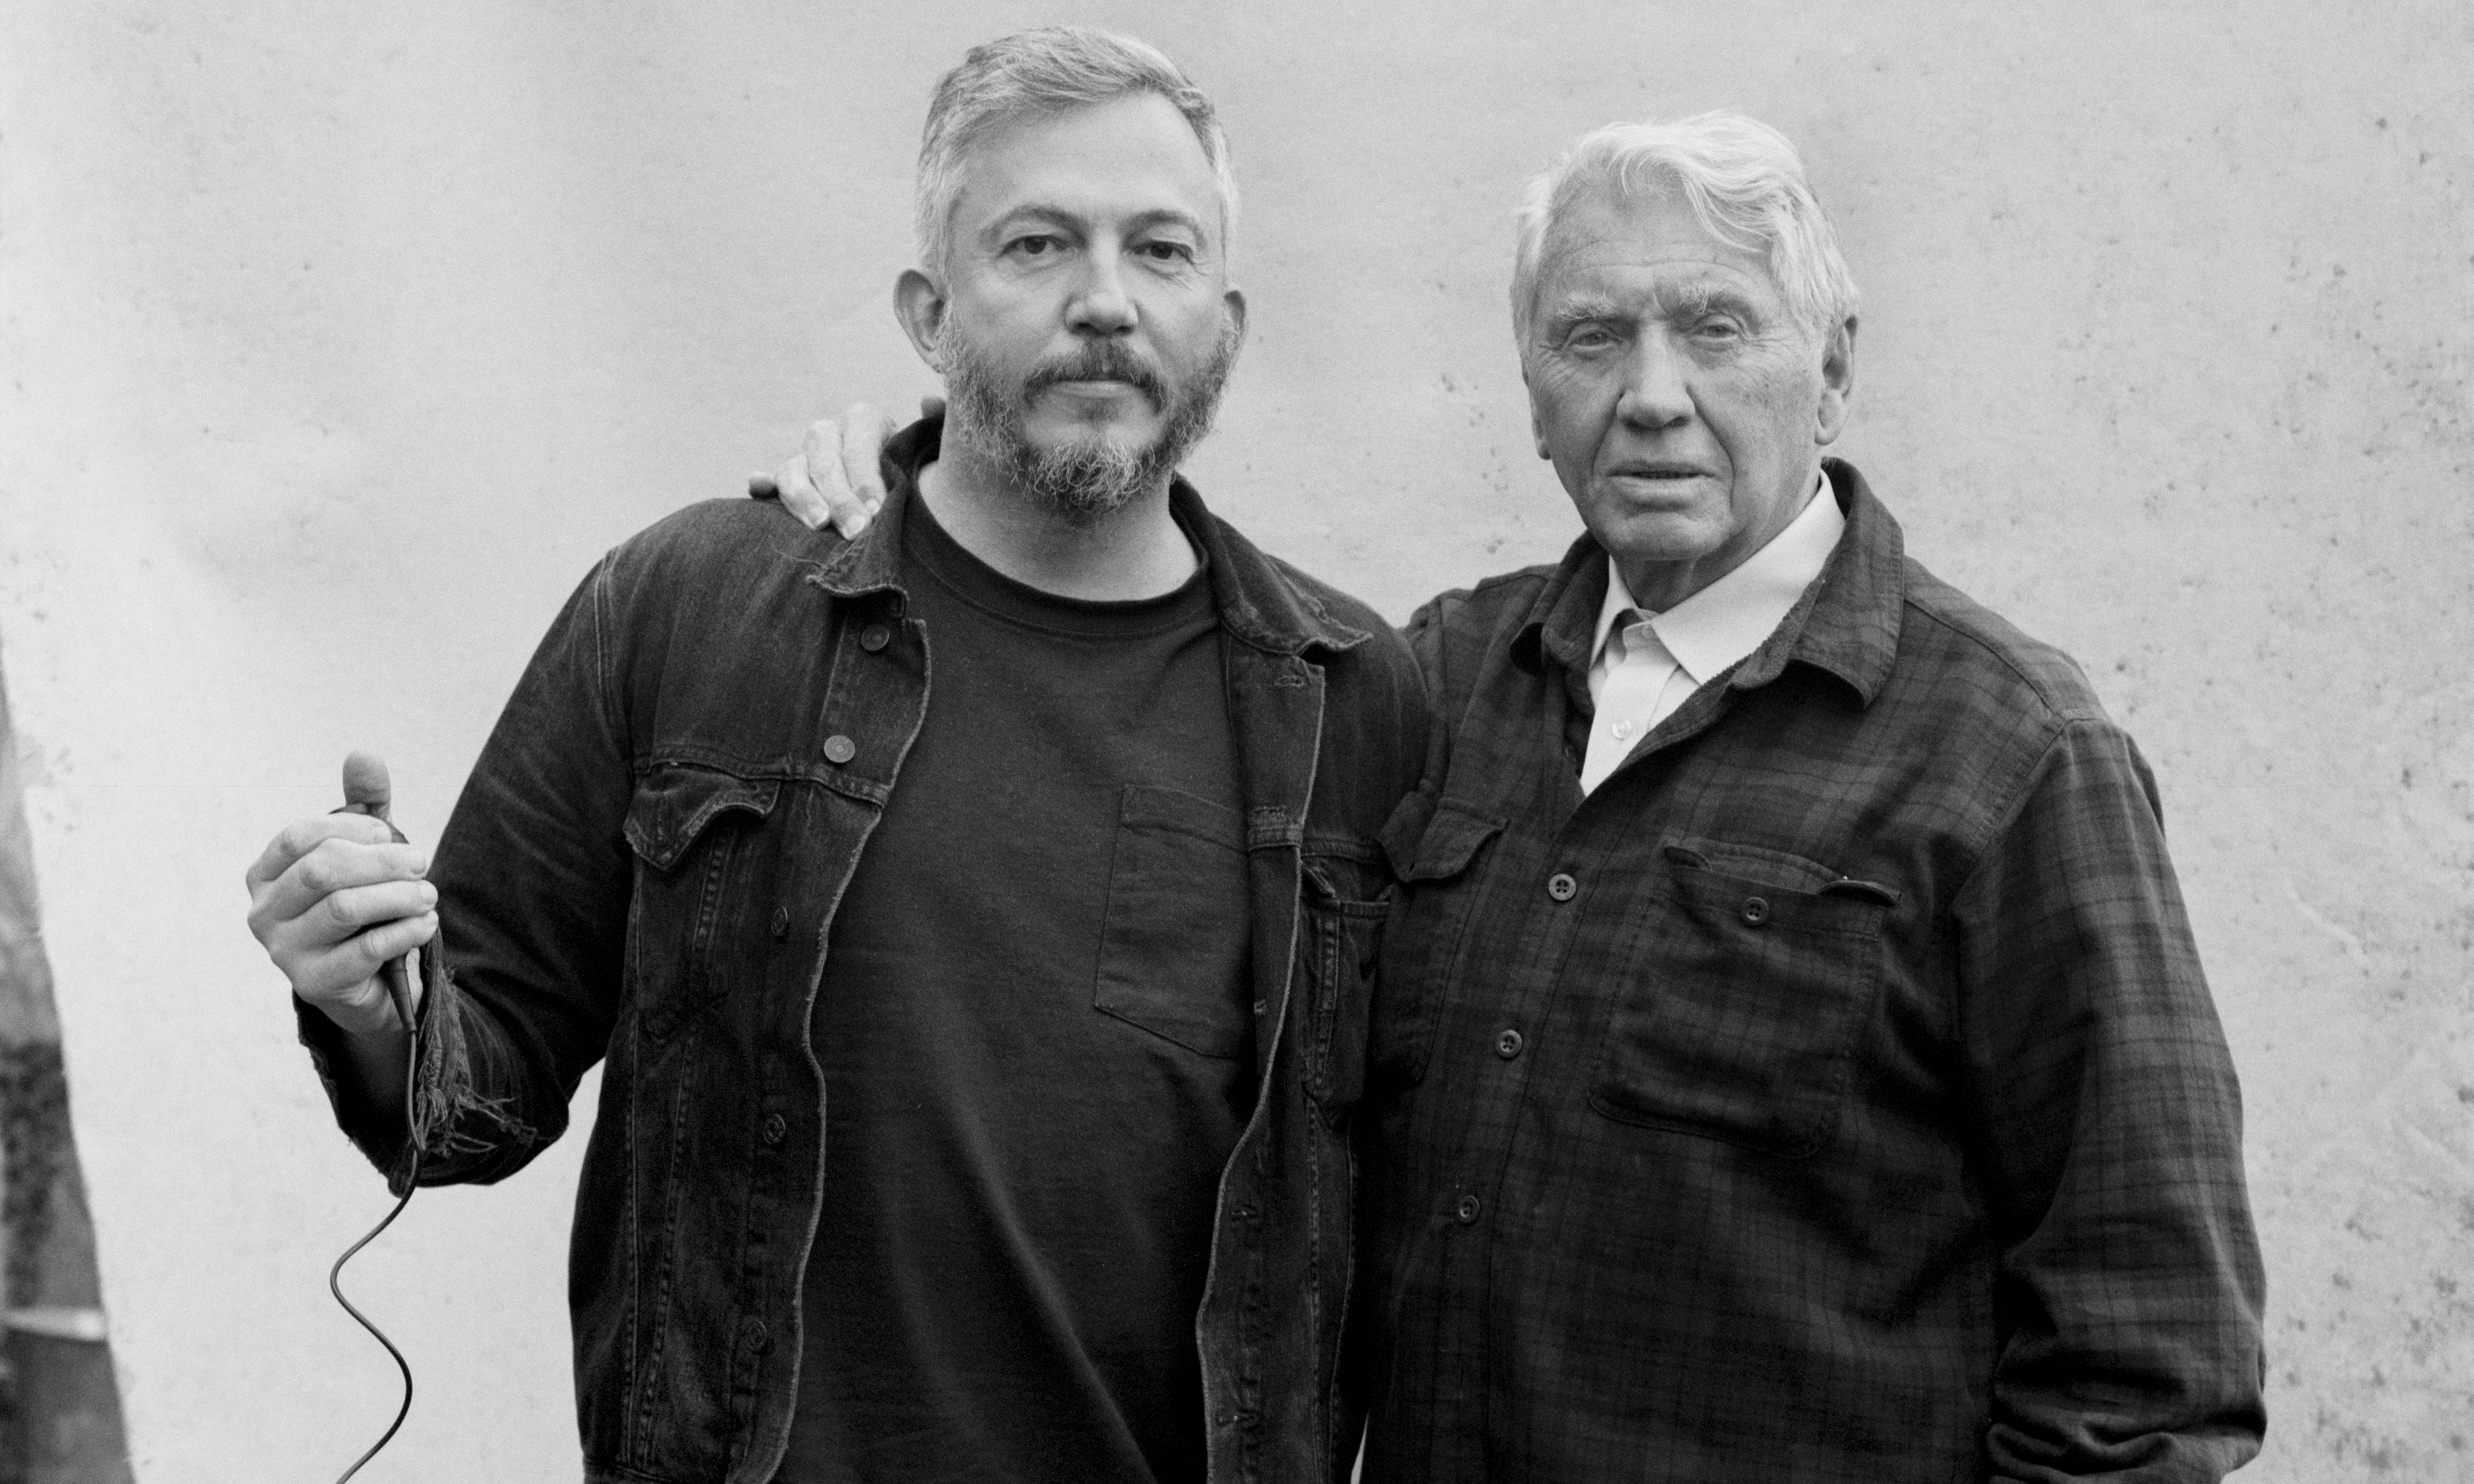 'Once photography gets a grip, you're captive': Don McCullin and Giles Duley in conversation